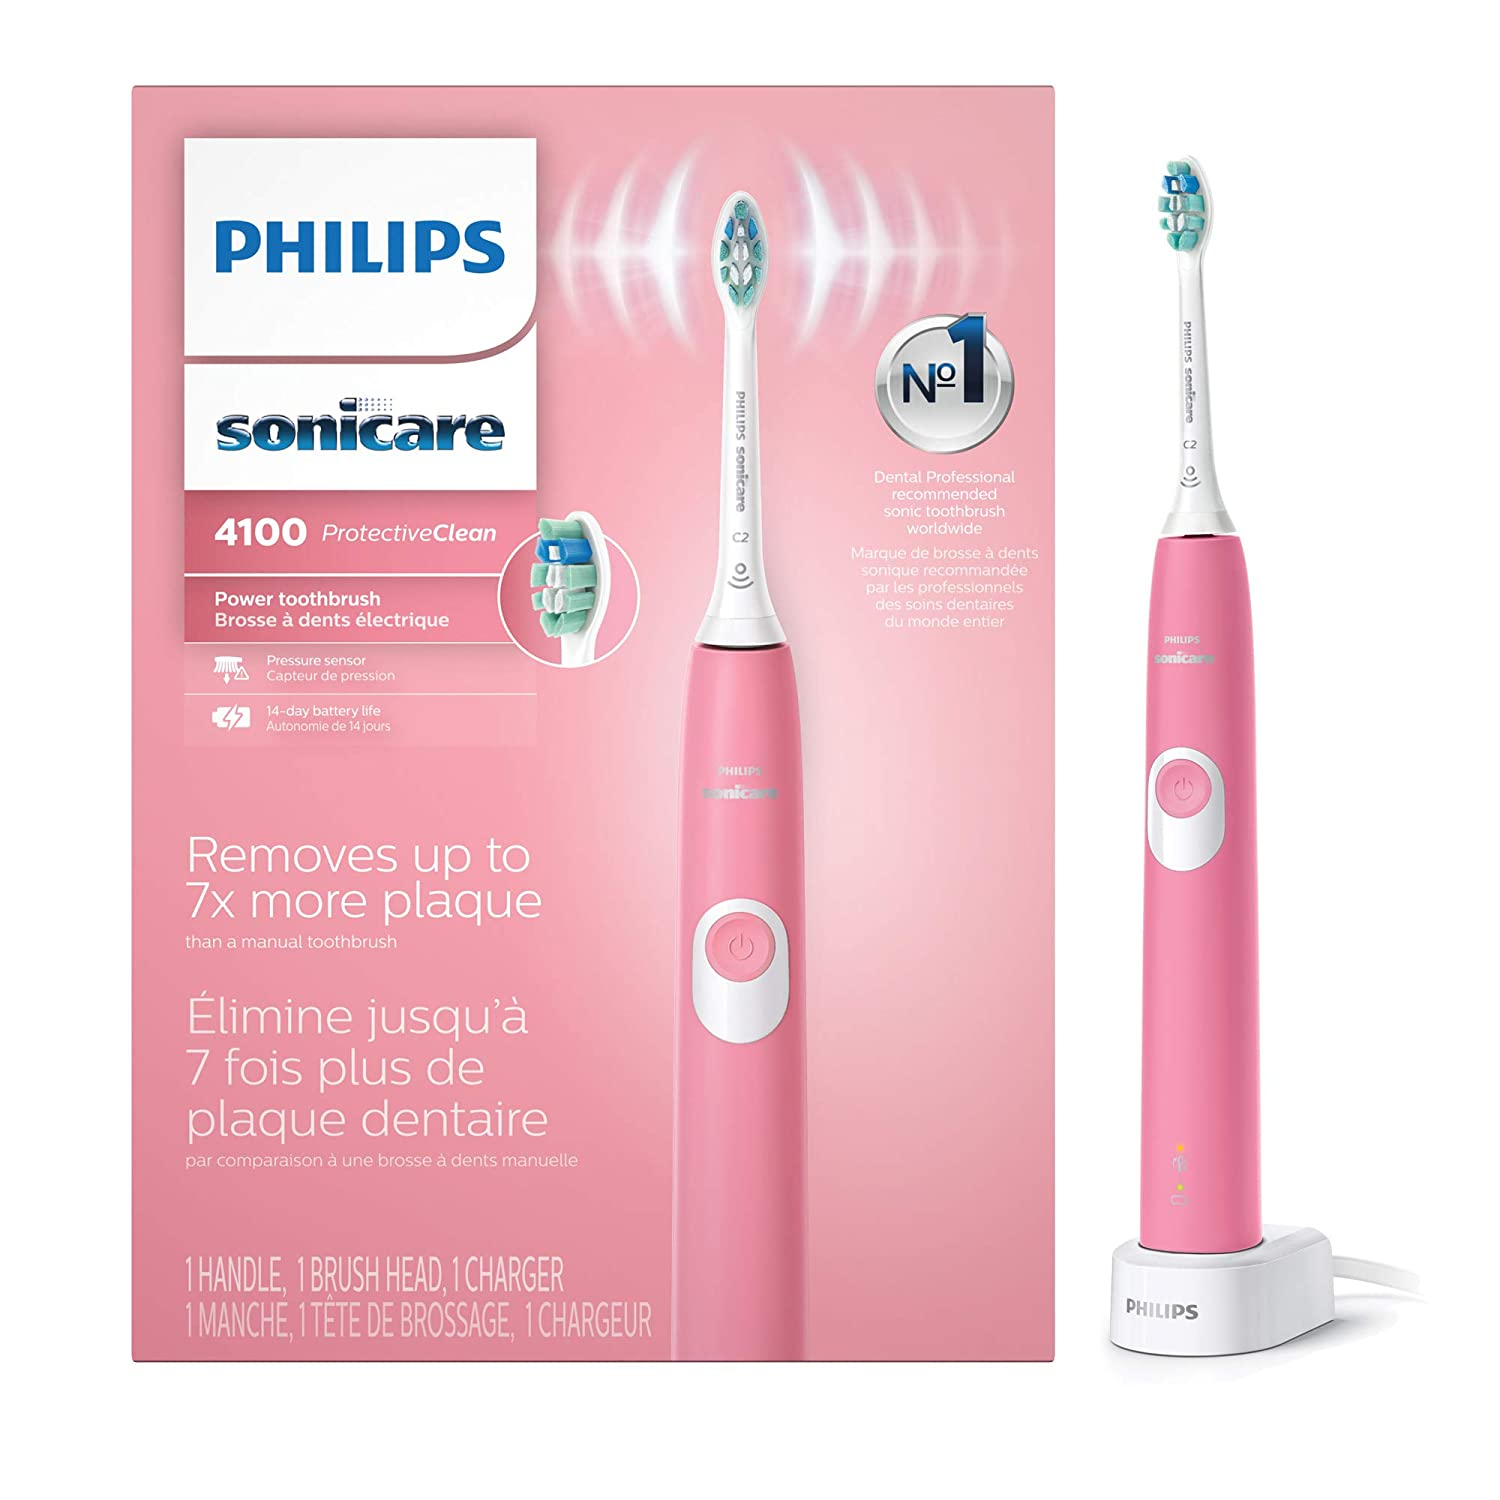 Philips Sonicare ProtectiveClean 4100 Rechargeable Electric Toothbrush, Deep Pink HX6815/01